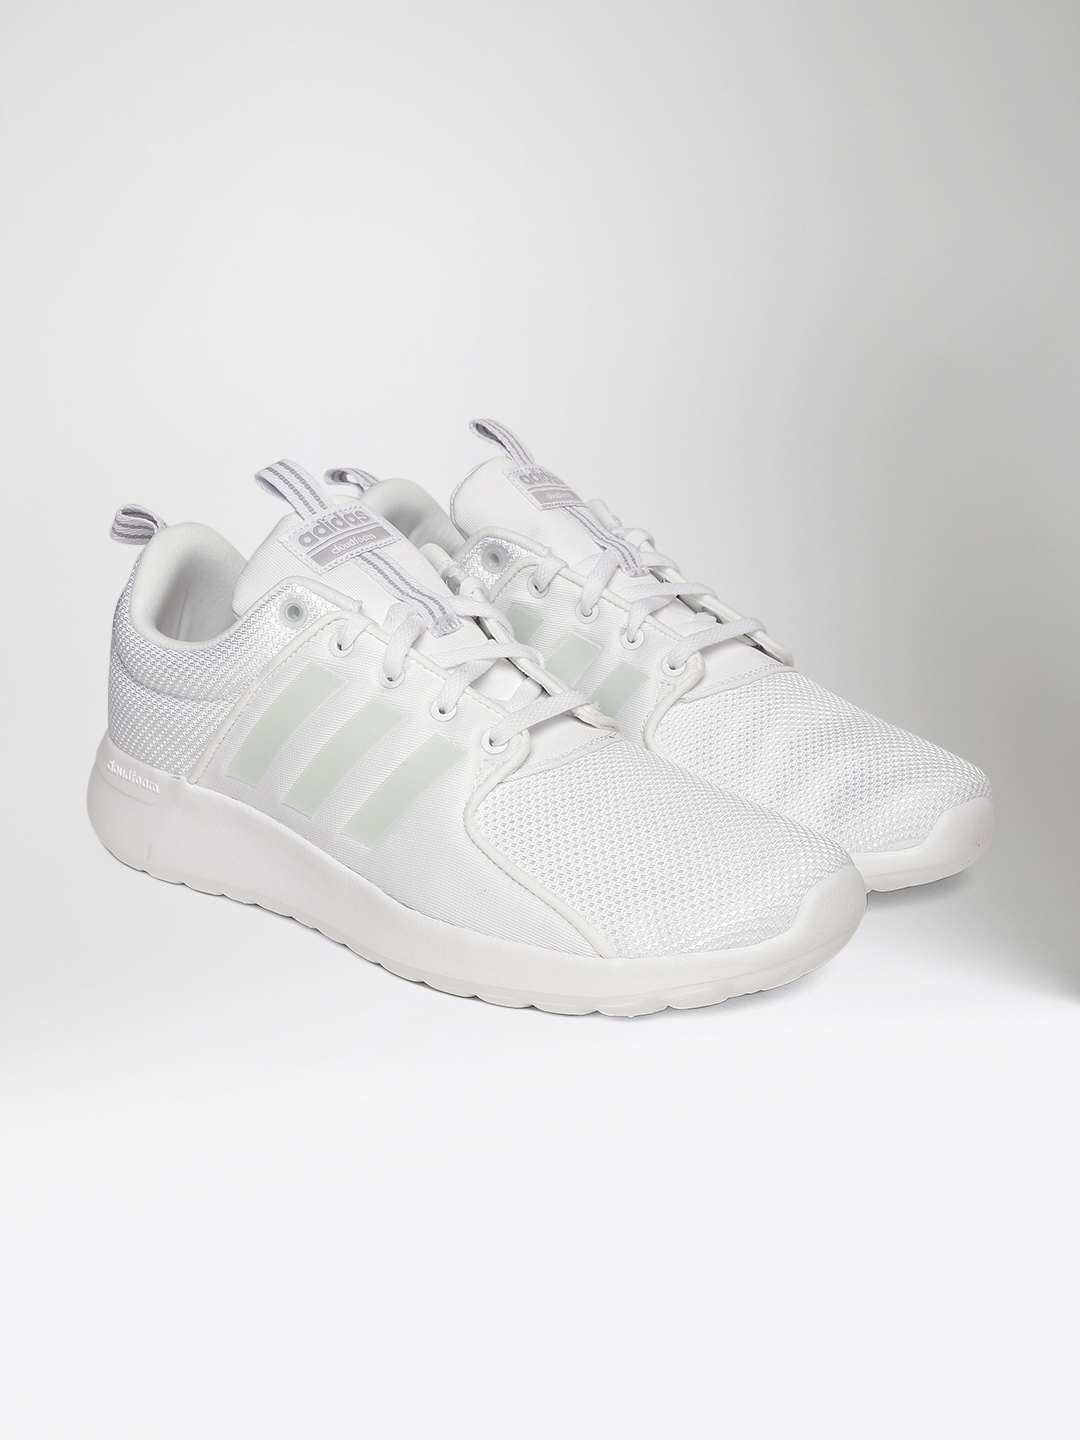 adidas uk promo code 2017 poptropica adidas shoes men white and green